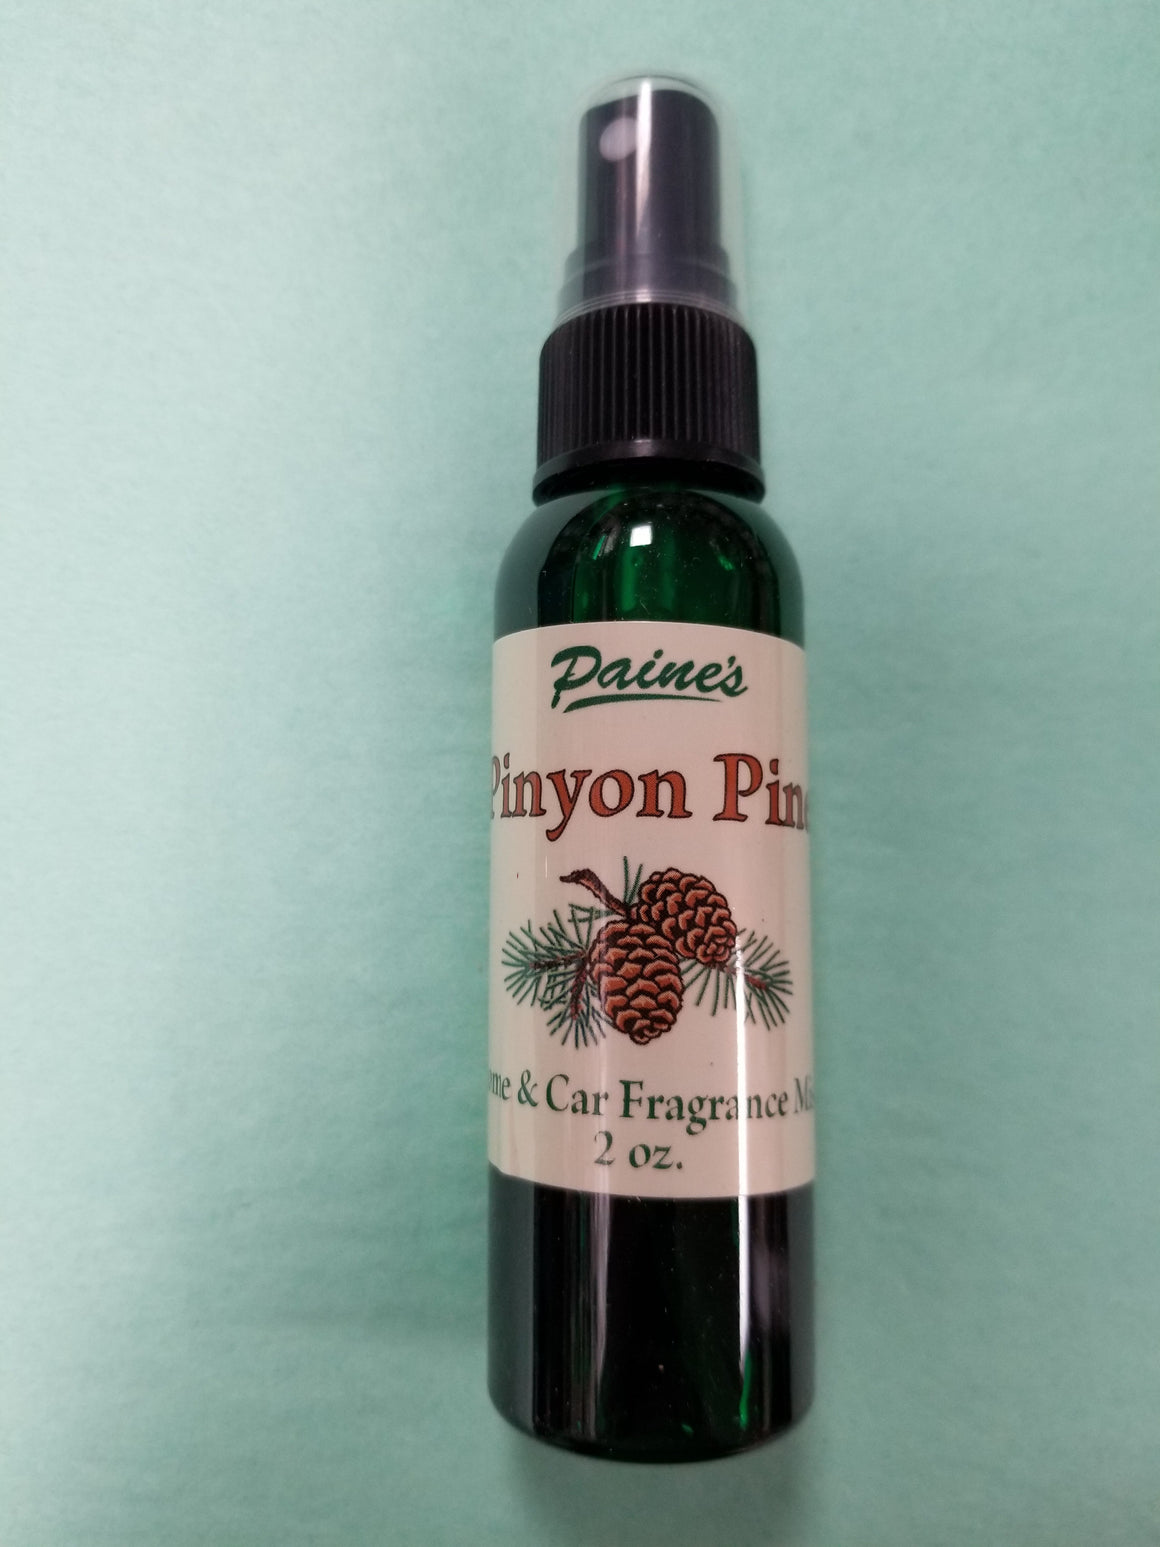 Pinyon Pine Home & Car Mist Fragrance Spray